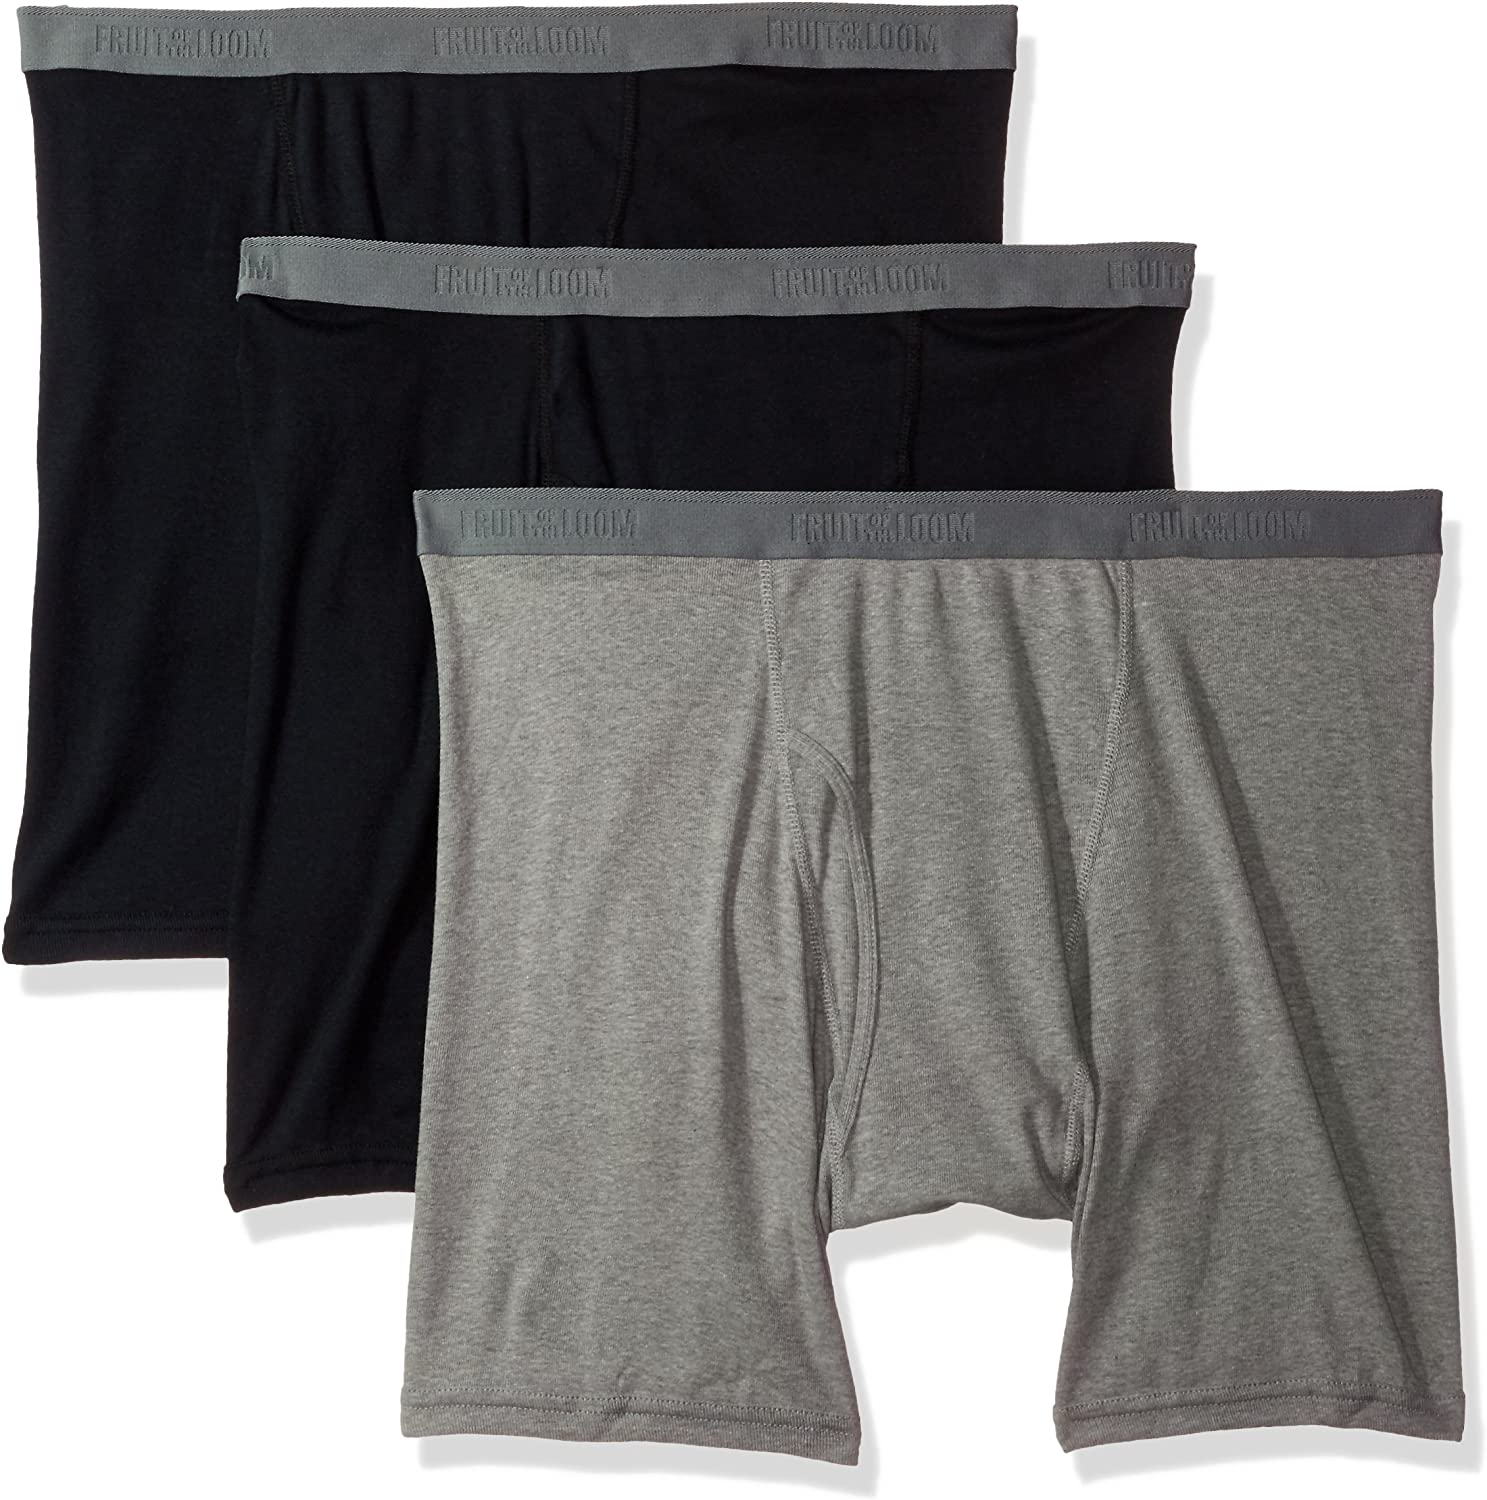 Fruit of the Loom Men's 3-Pack Big Man Premium Boxer Brief, assorted